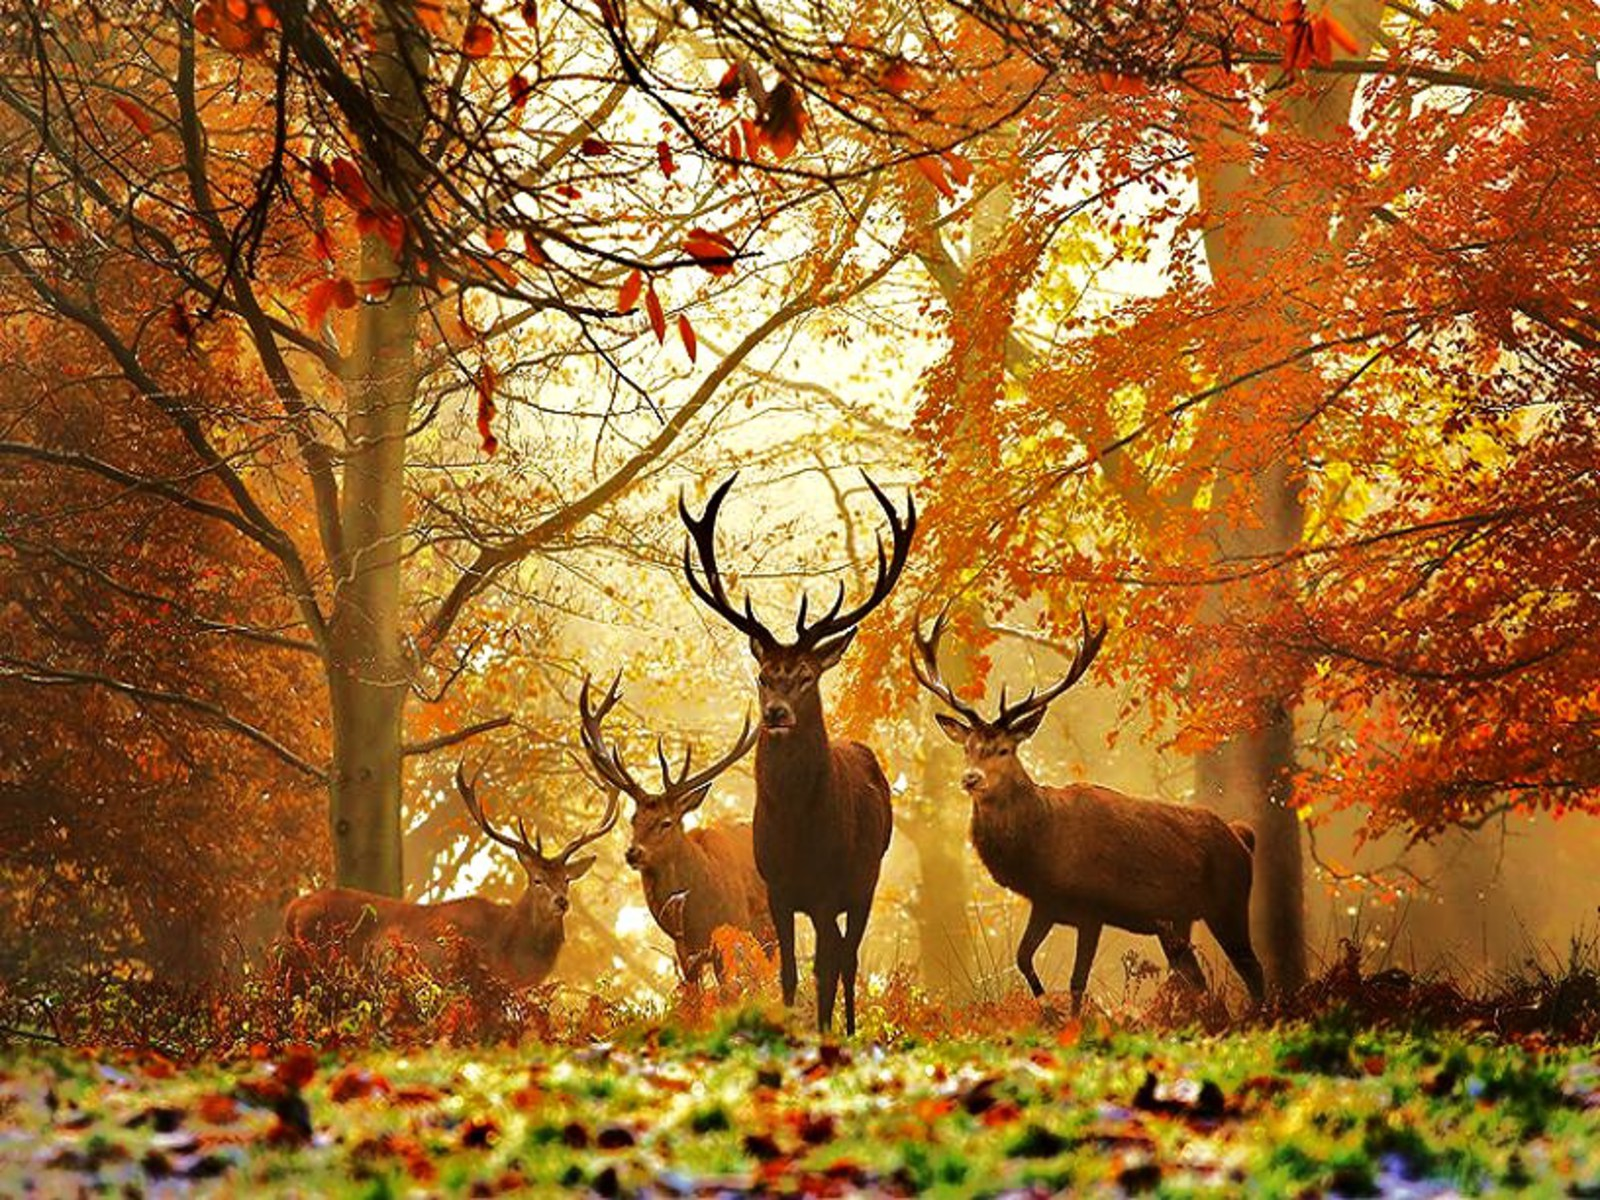 hd wallpapers deer hd wallpapers deer hd wallpapers deer hd wallpapers 1600x1200